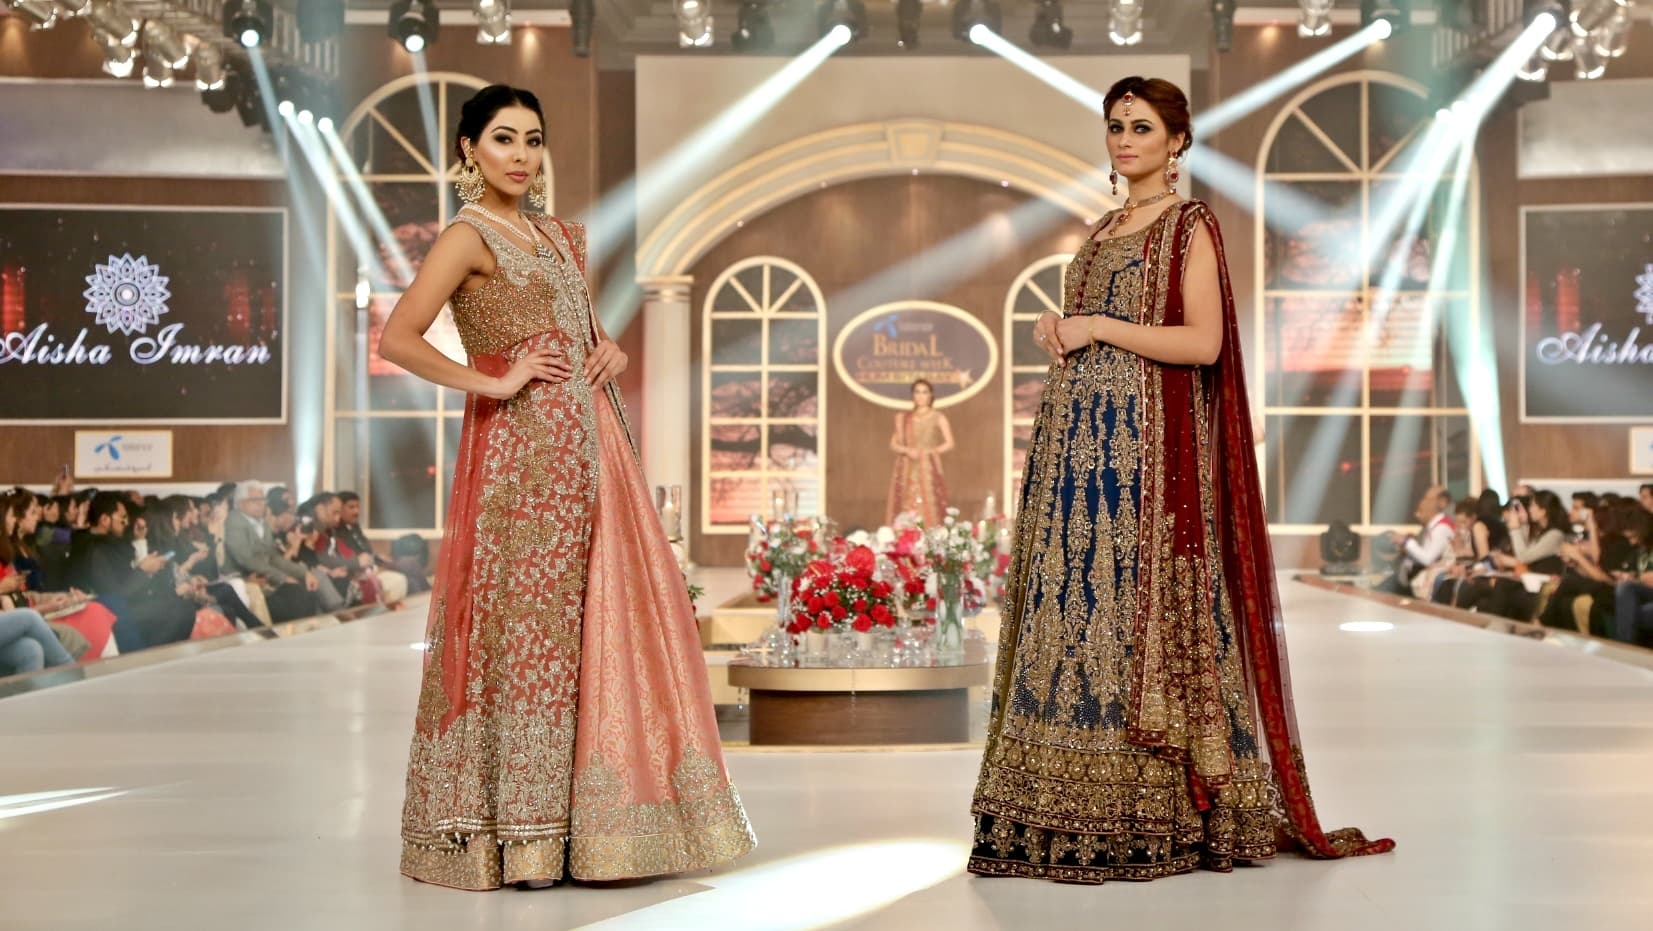 The bride's guide to winter weddings, as told through Bridal Couture Week